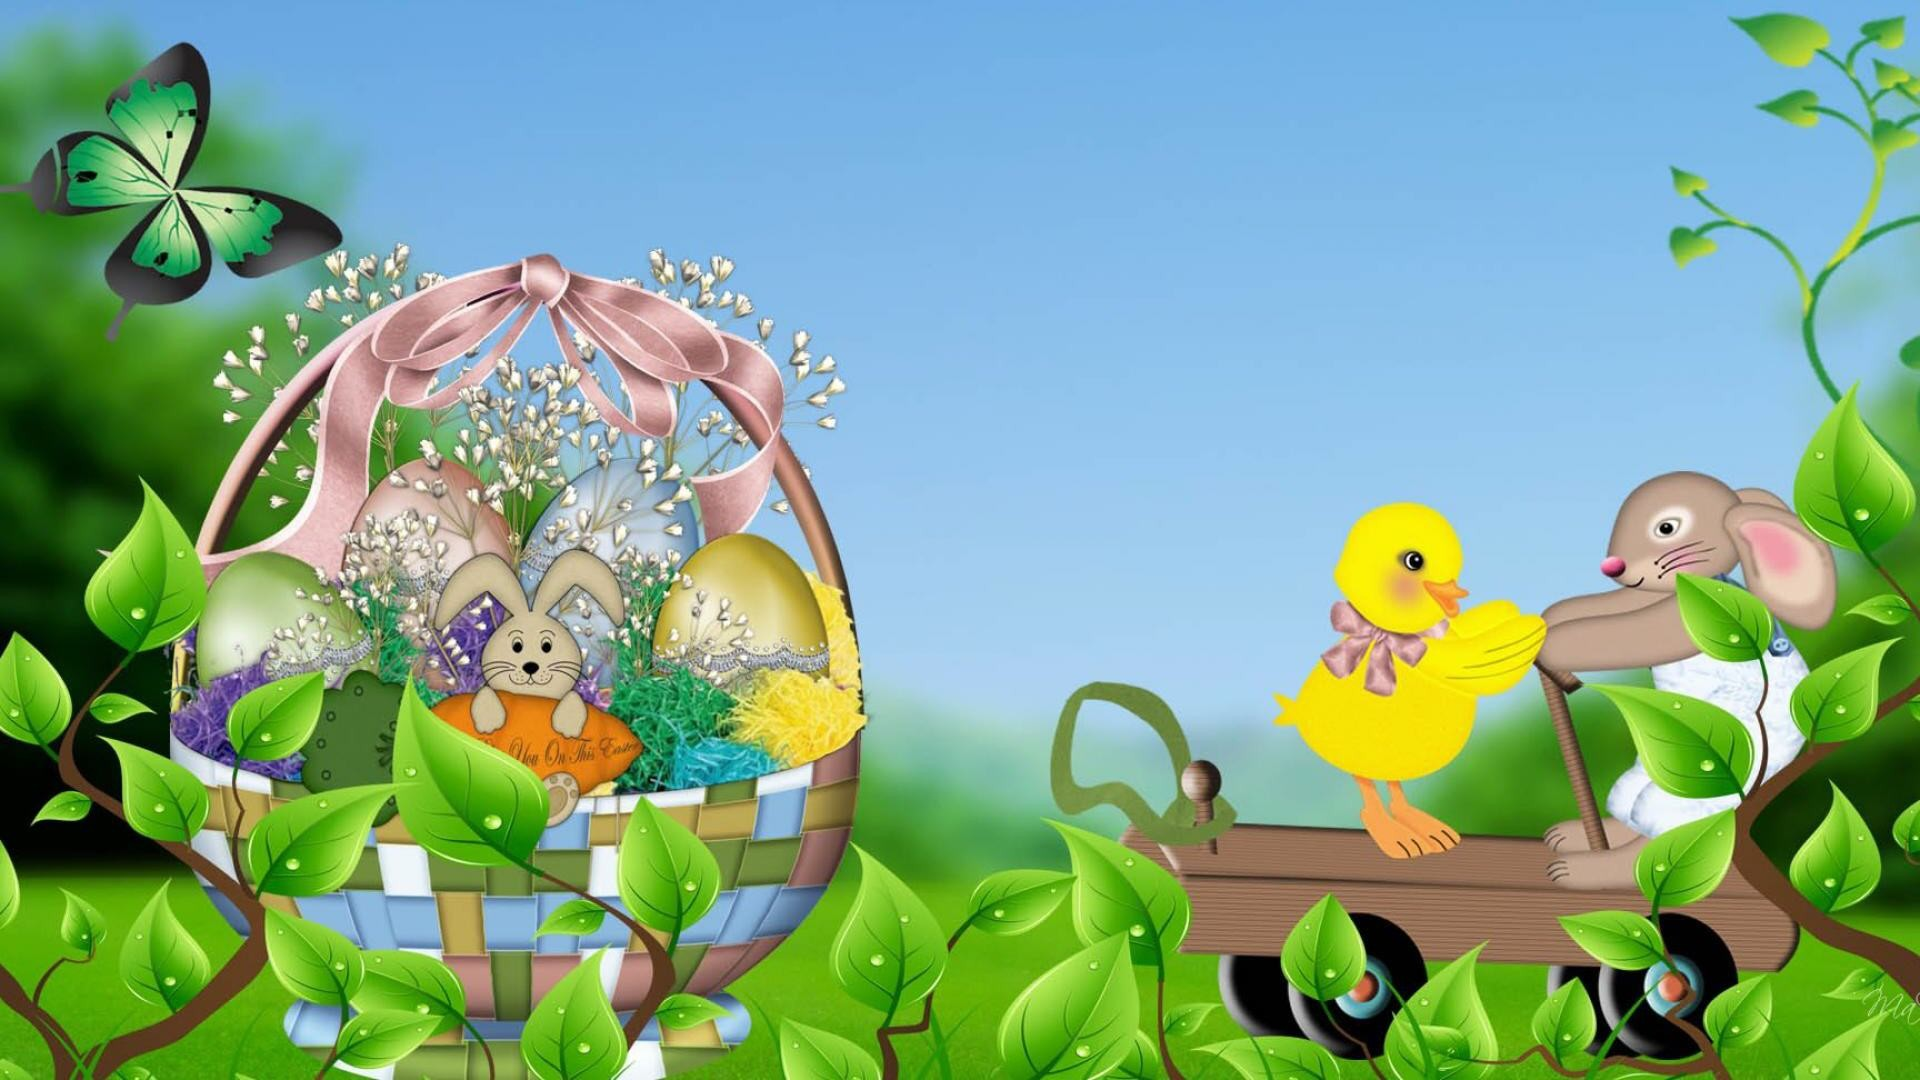 easter wallpaper which is under the easter wallpapers category of free .